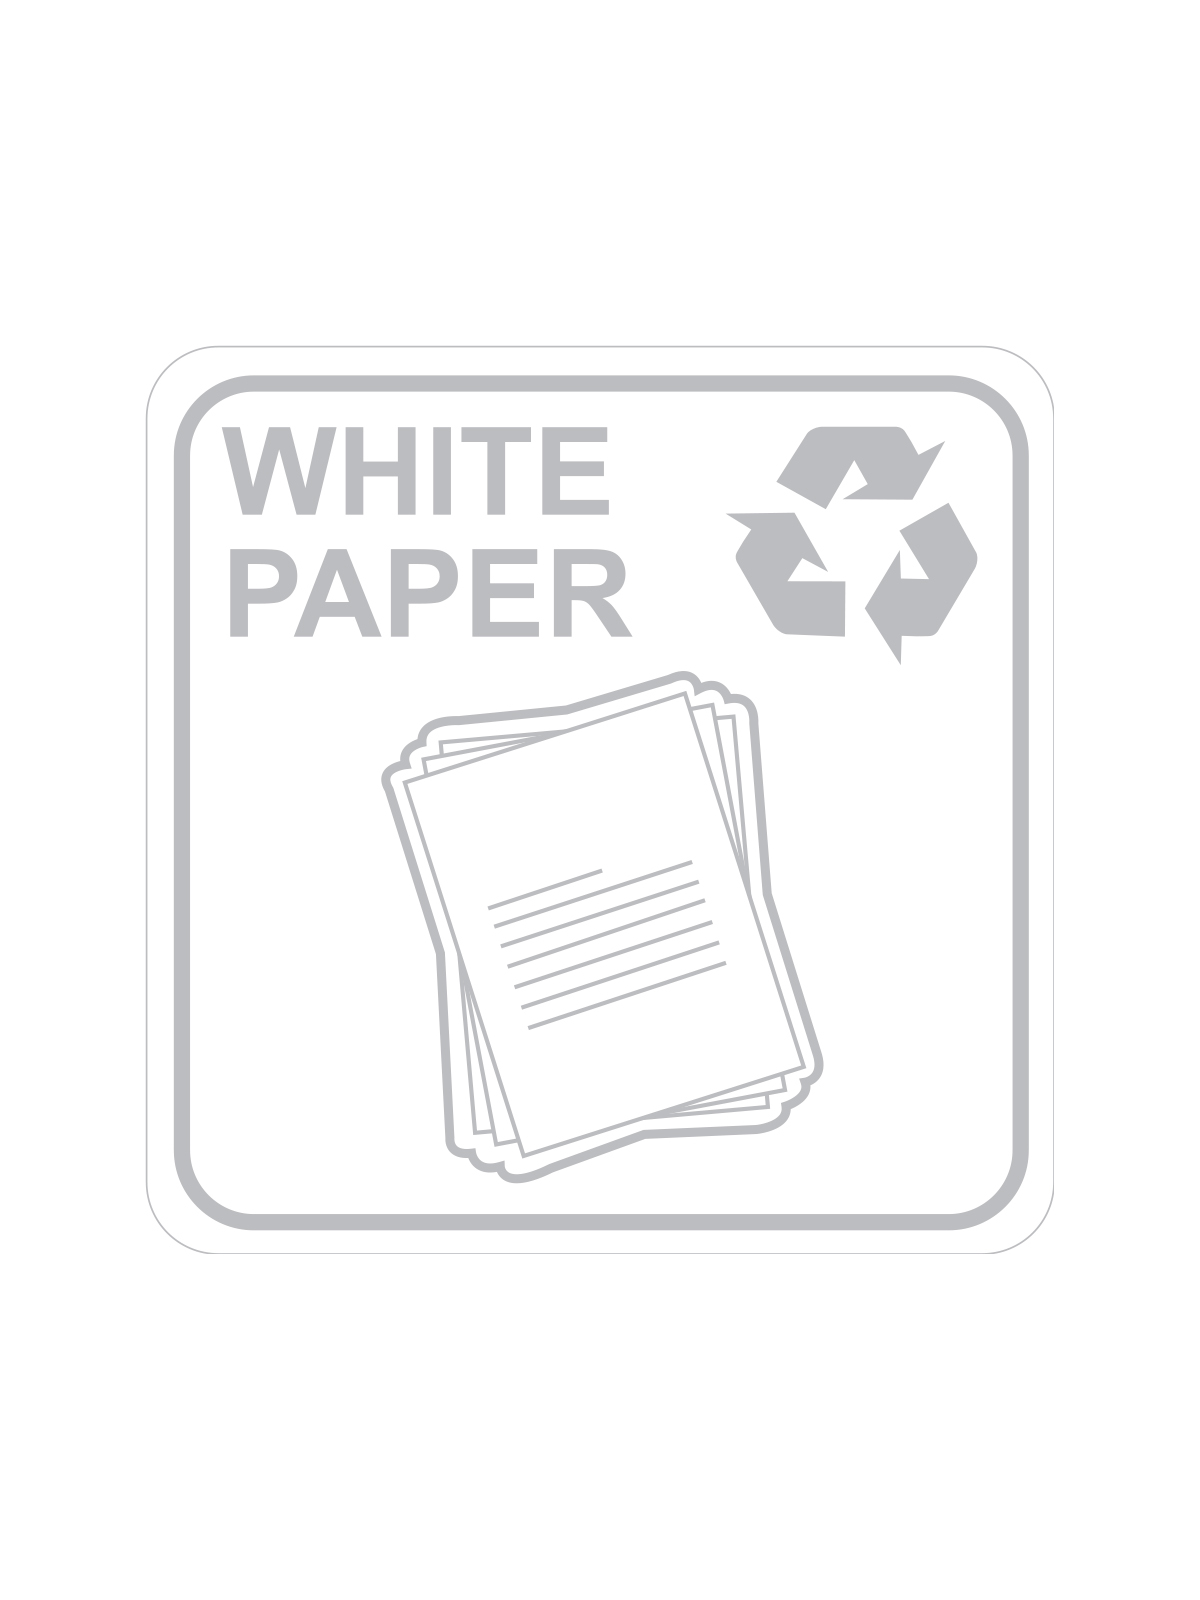 SQUARE LABEL WHITE PAPER ONLY